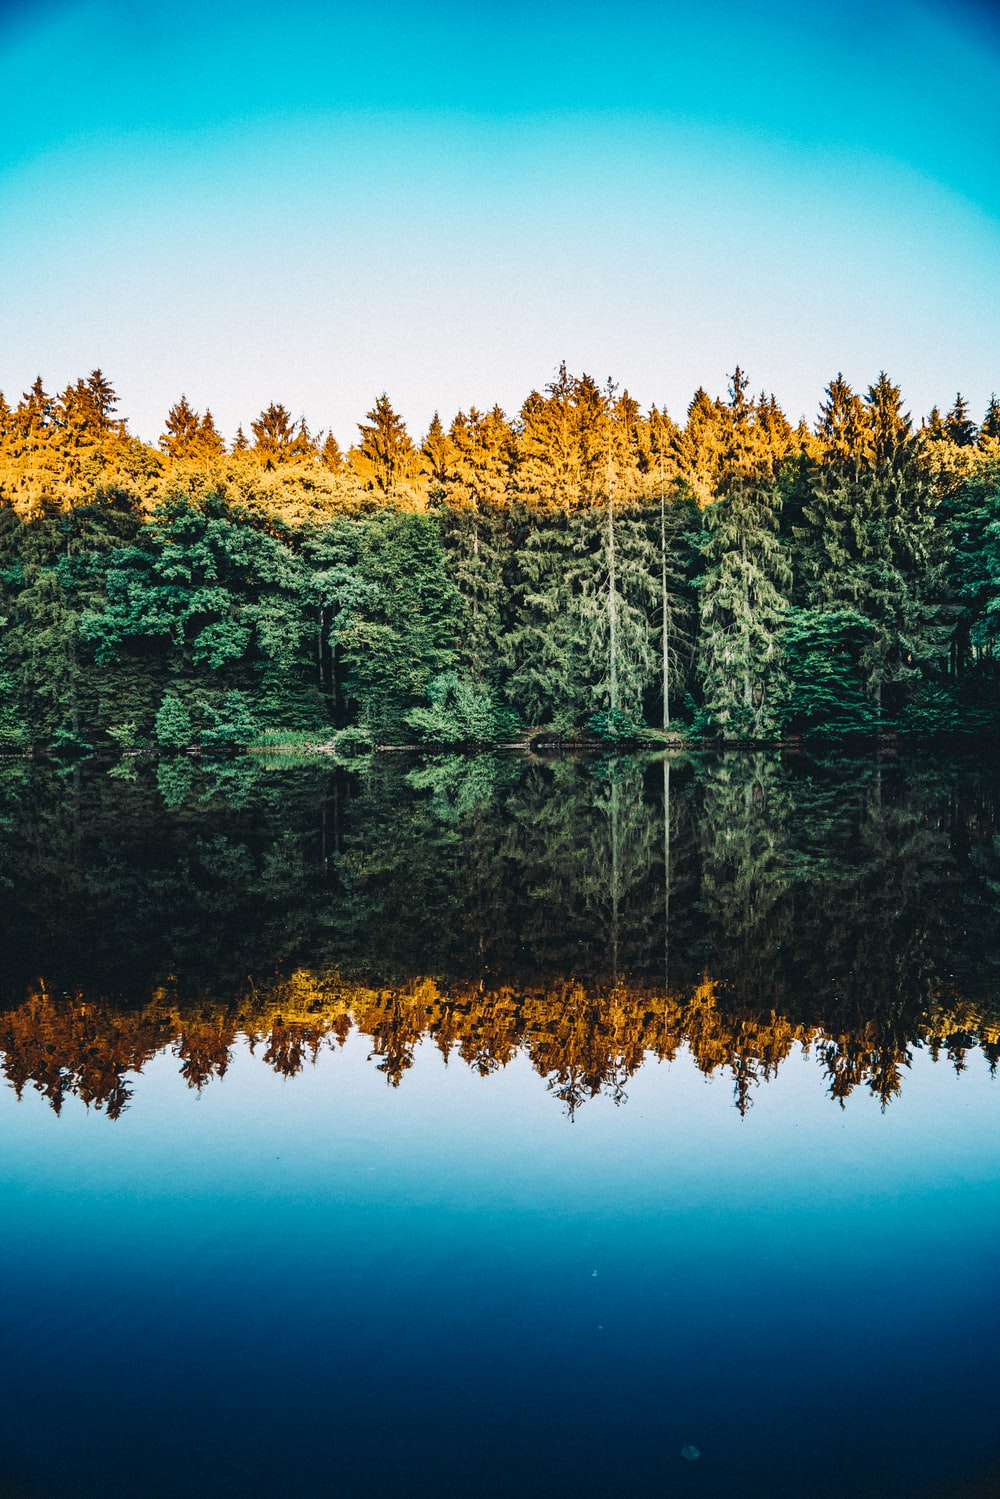 photography of trees reflecting on body of water under clear blue sky